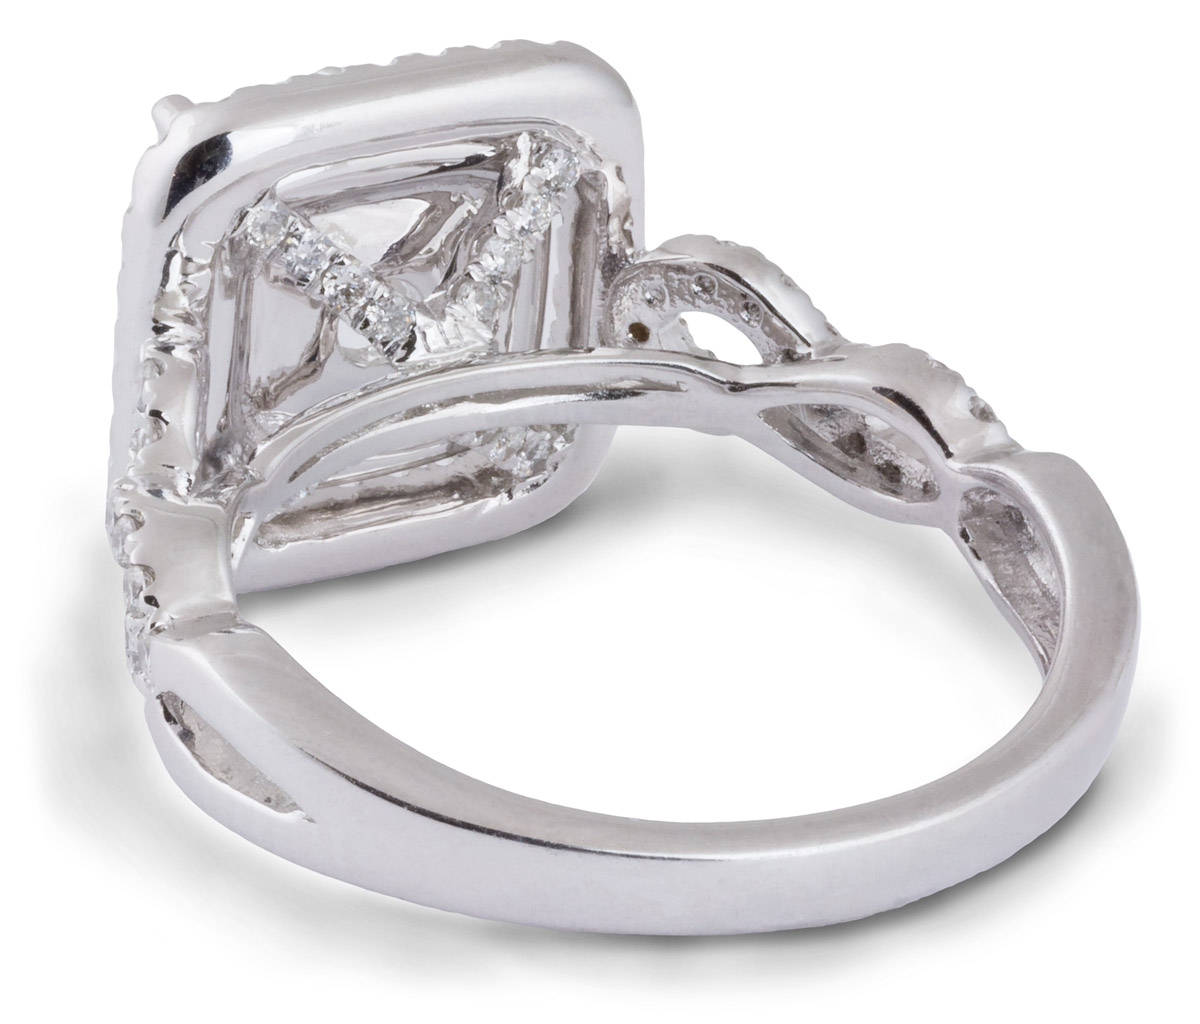 Double Square Halo Engagement Ring with Criss-Cross Shank - Back